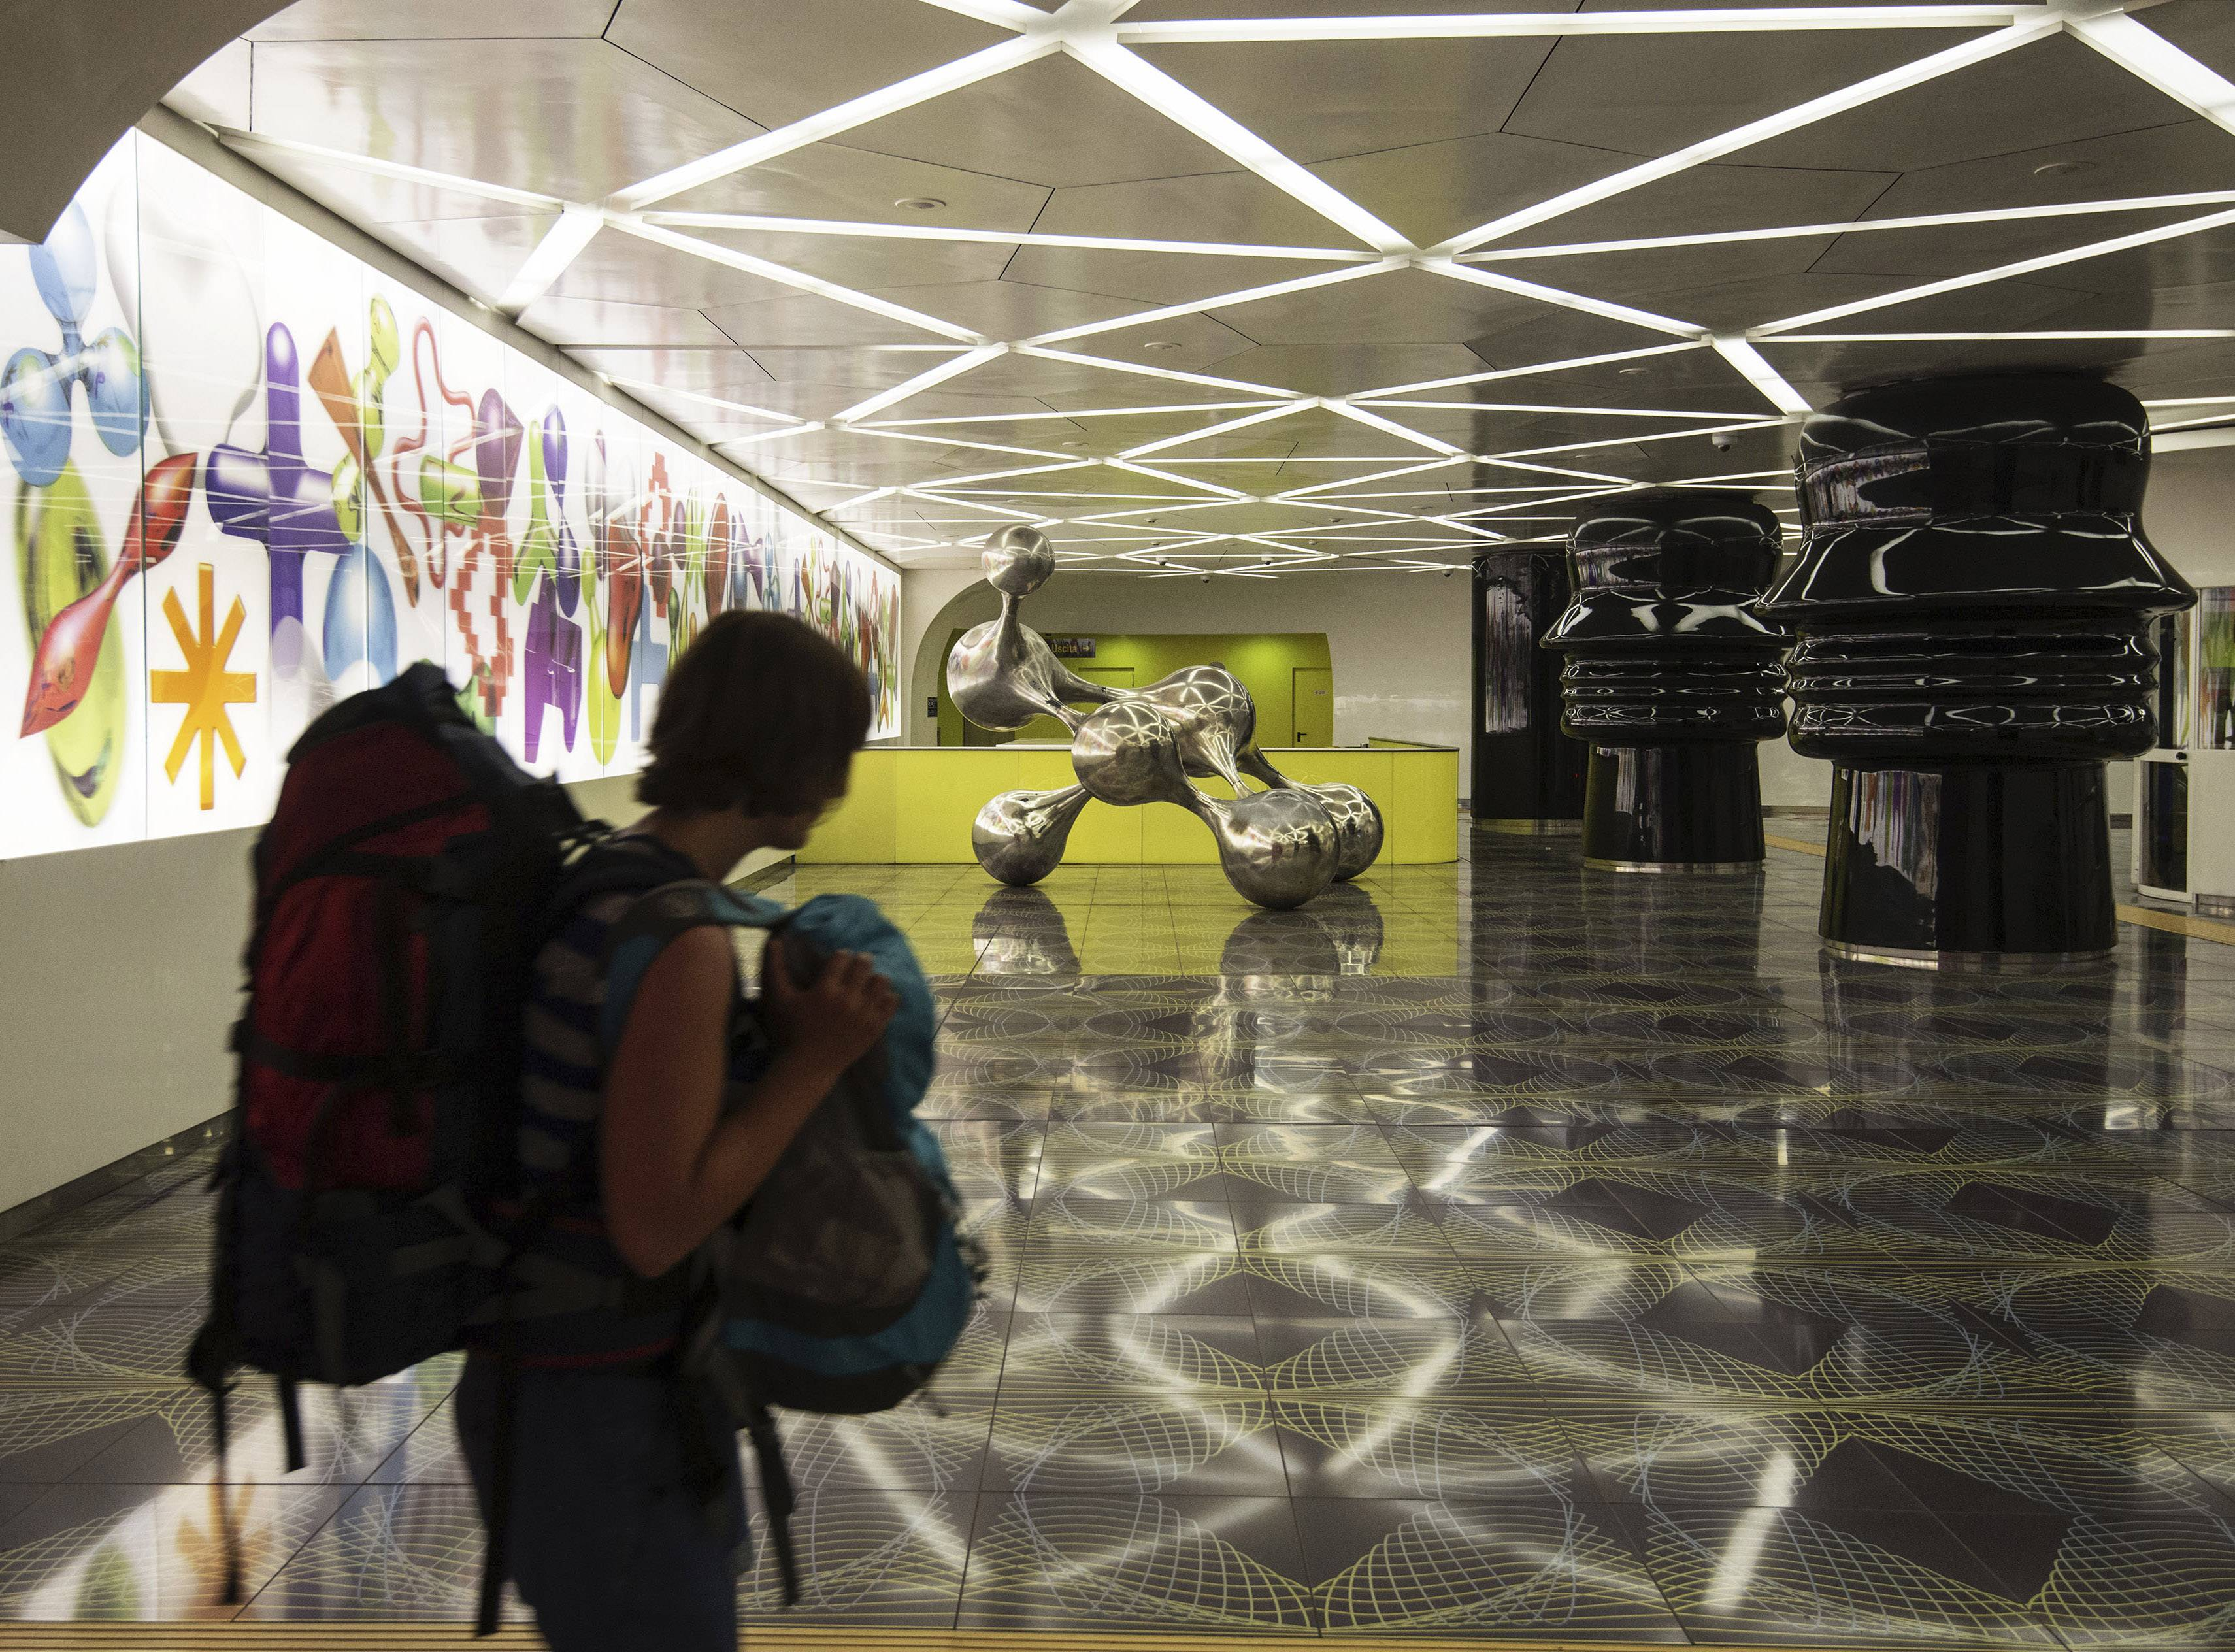 A woman walks past sculptures by Egyptian architect Karim Rashid on display in the underground metro station of Universita', part of a project called Art Stations, in Naples, Italy.